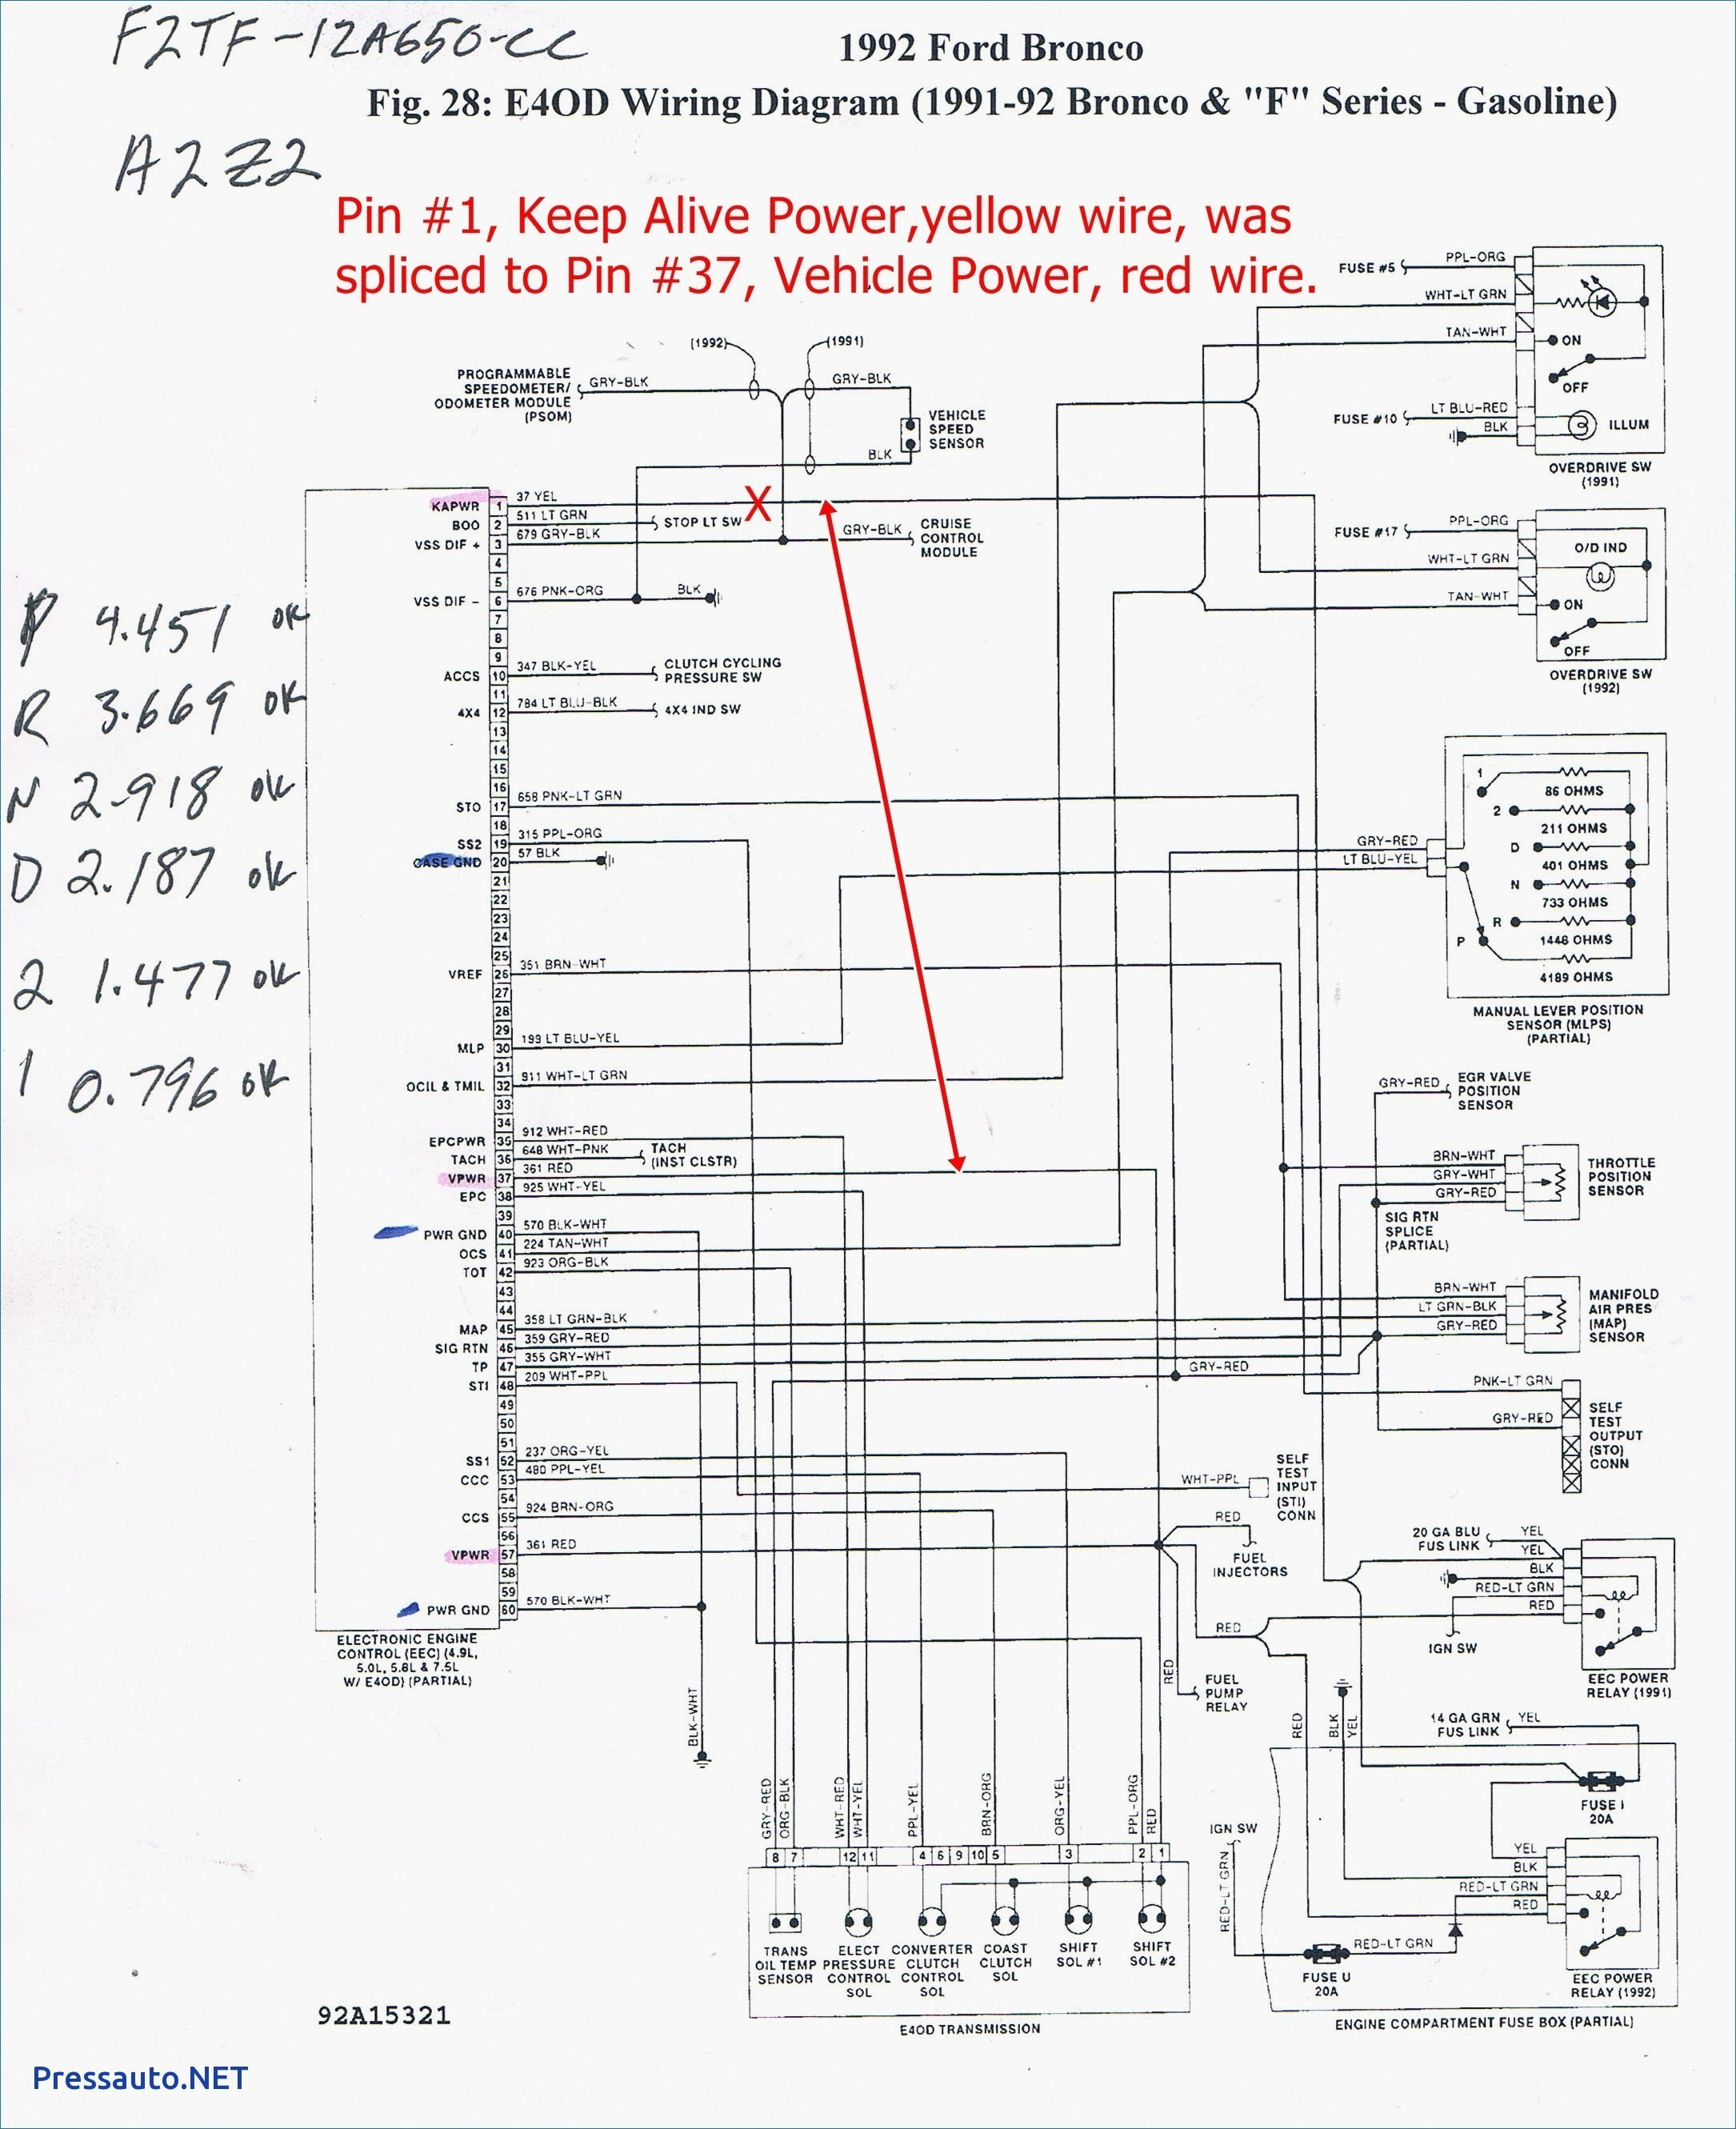 2002 dodge ram 1500 stereo wiring diagram gallery wiring diagram rh faceitsalon com 1999 dodge ram 3500 radio wiring diagram 99 dodge 2500 radio wiring diagram